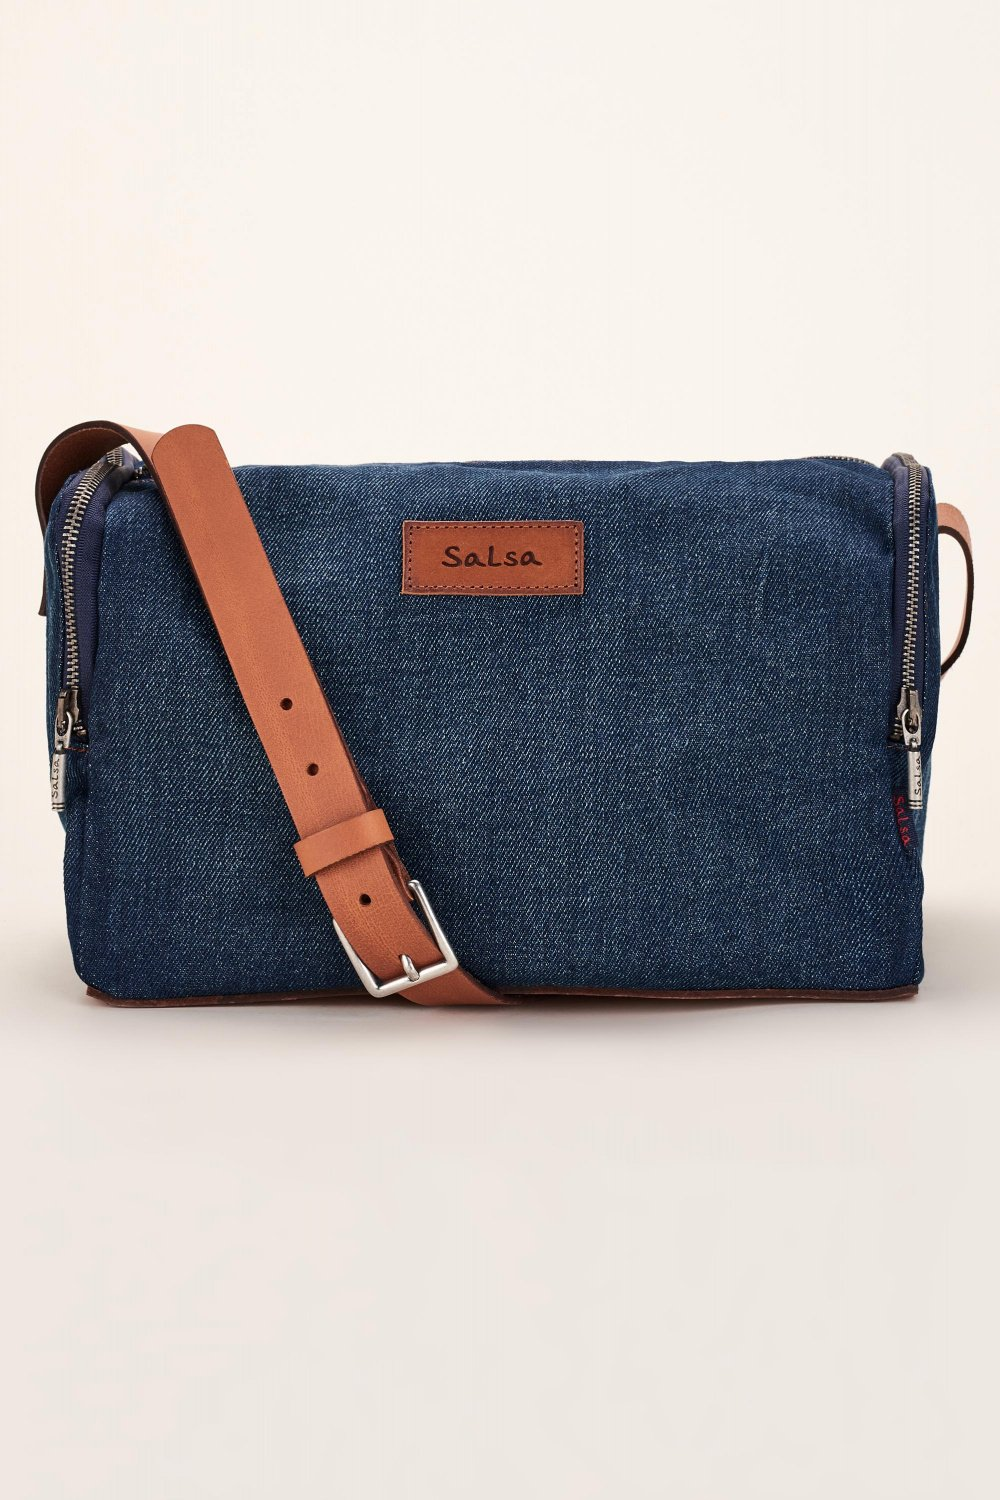 Handbag in organic denim - Salsa